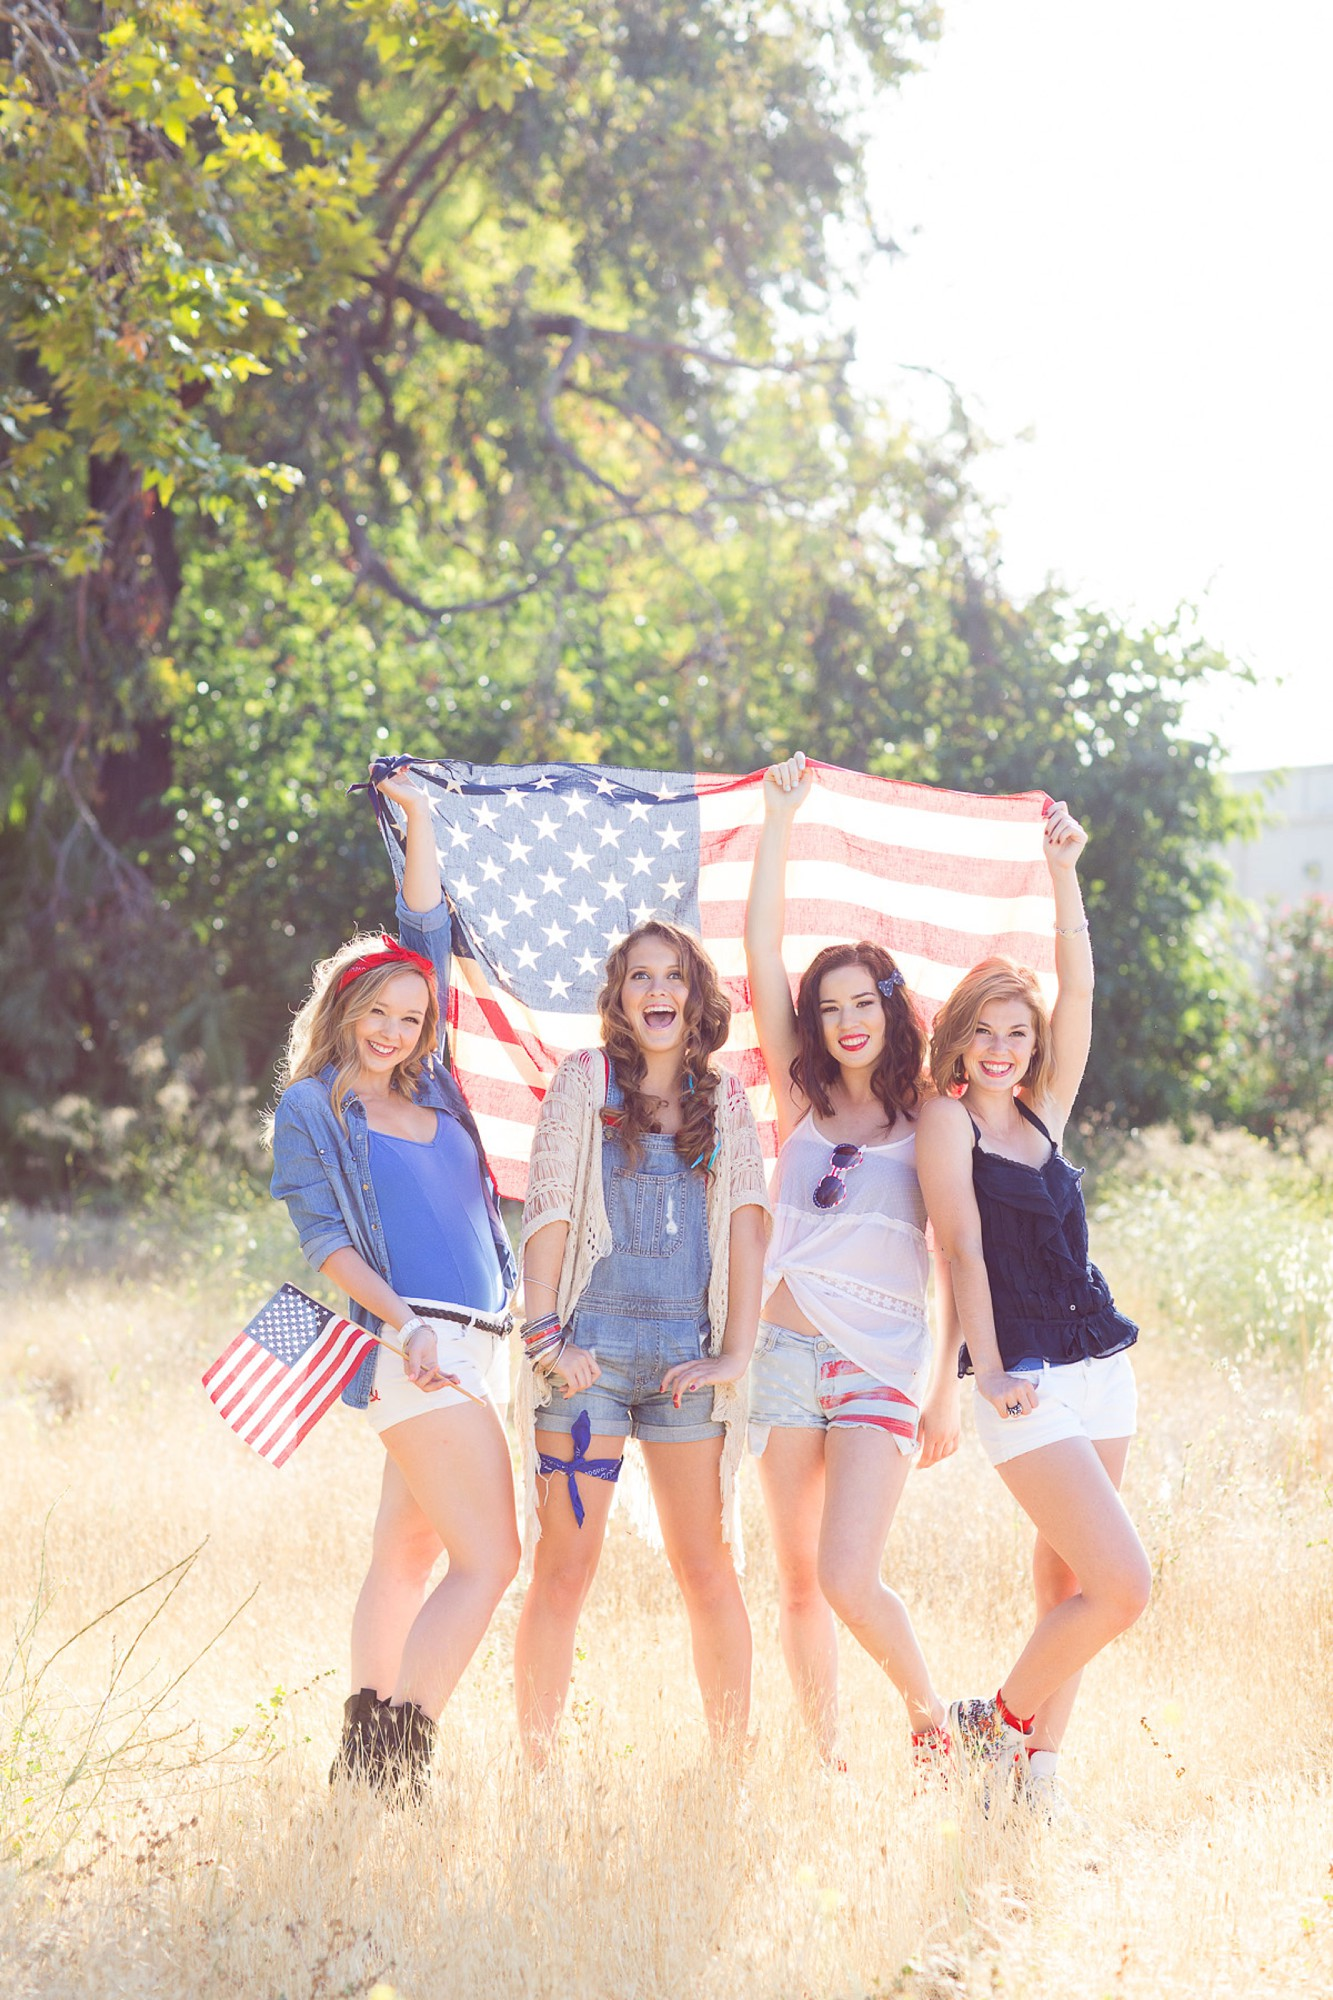 Patriotic Americana Photoshoot